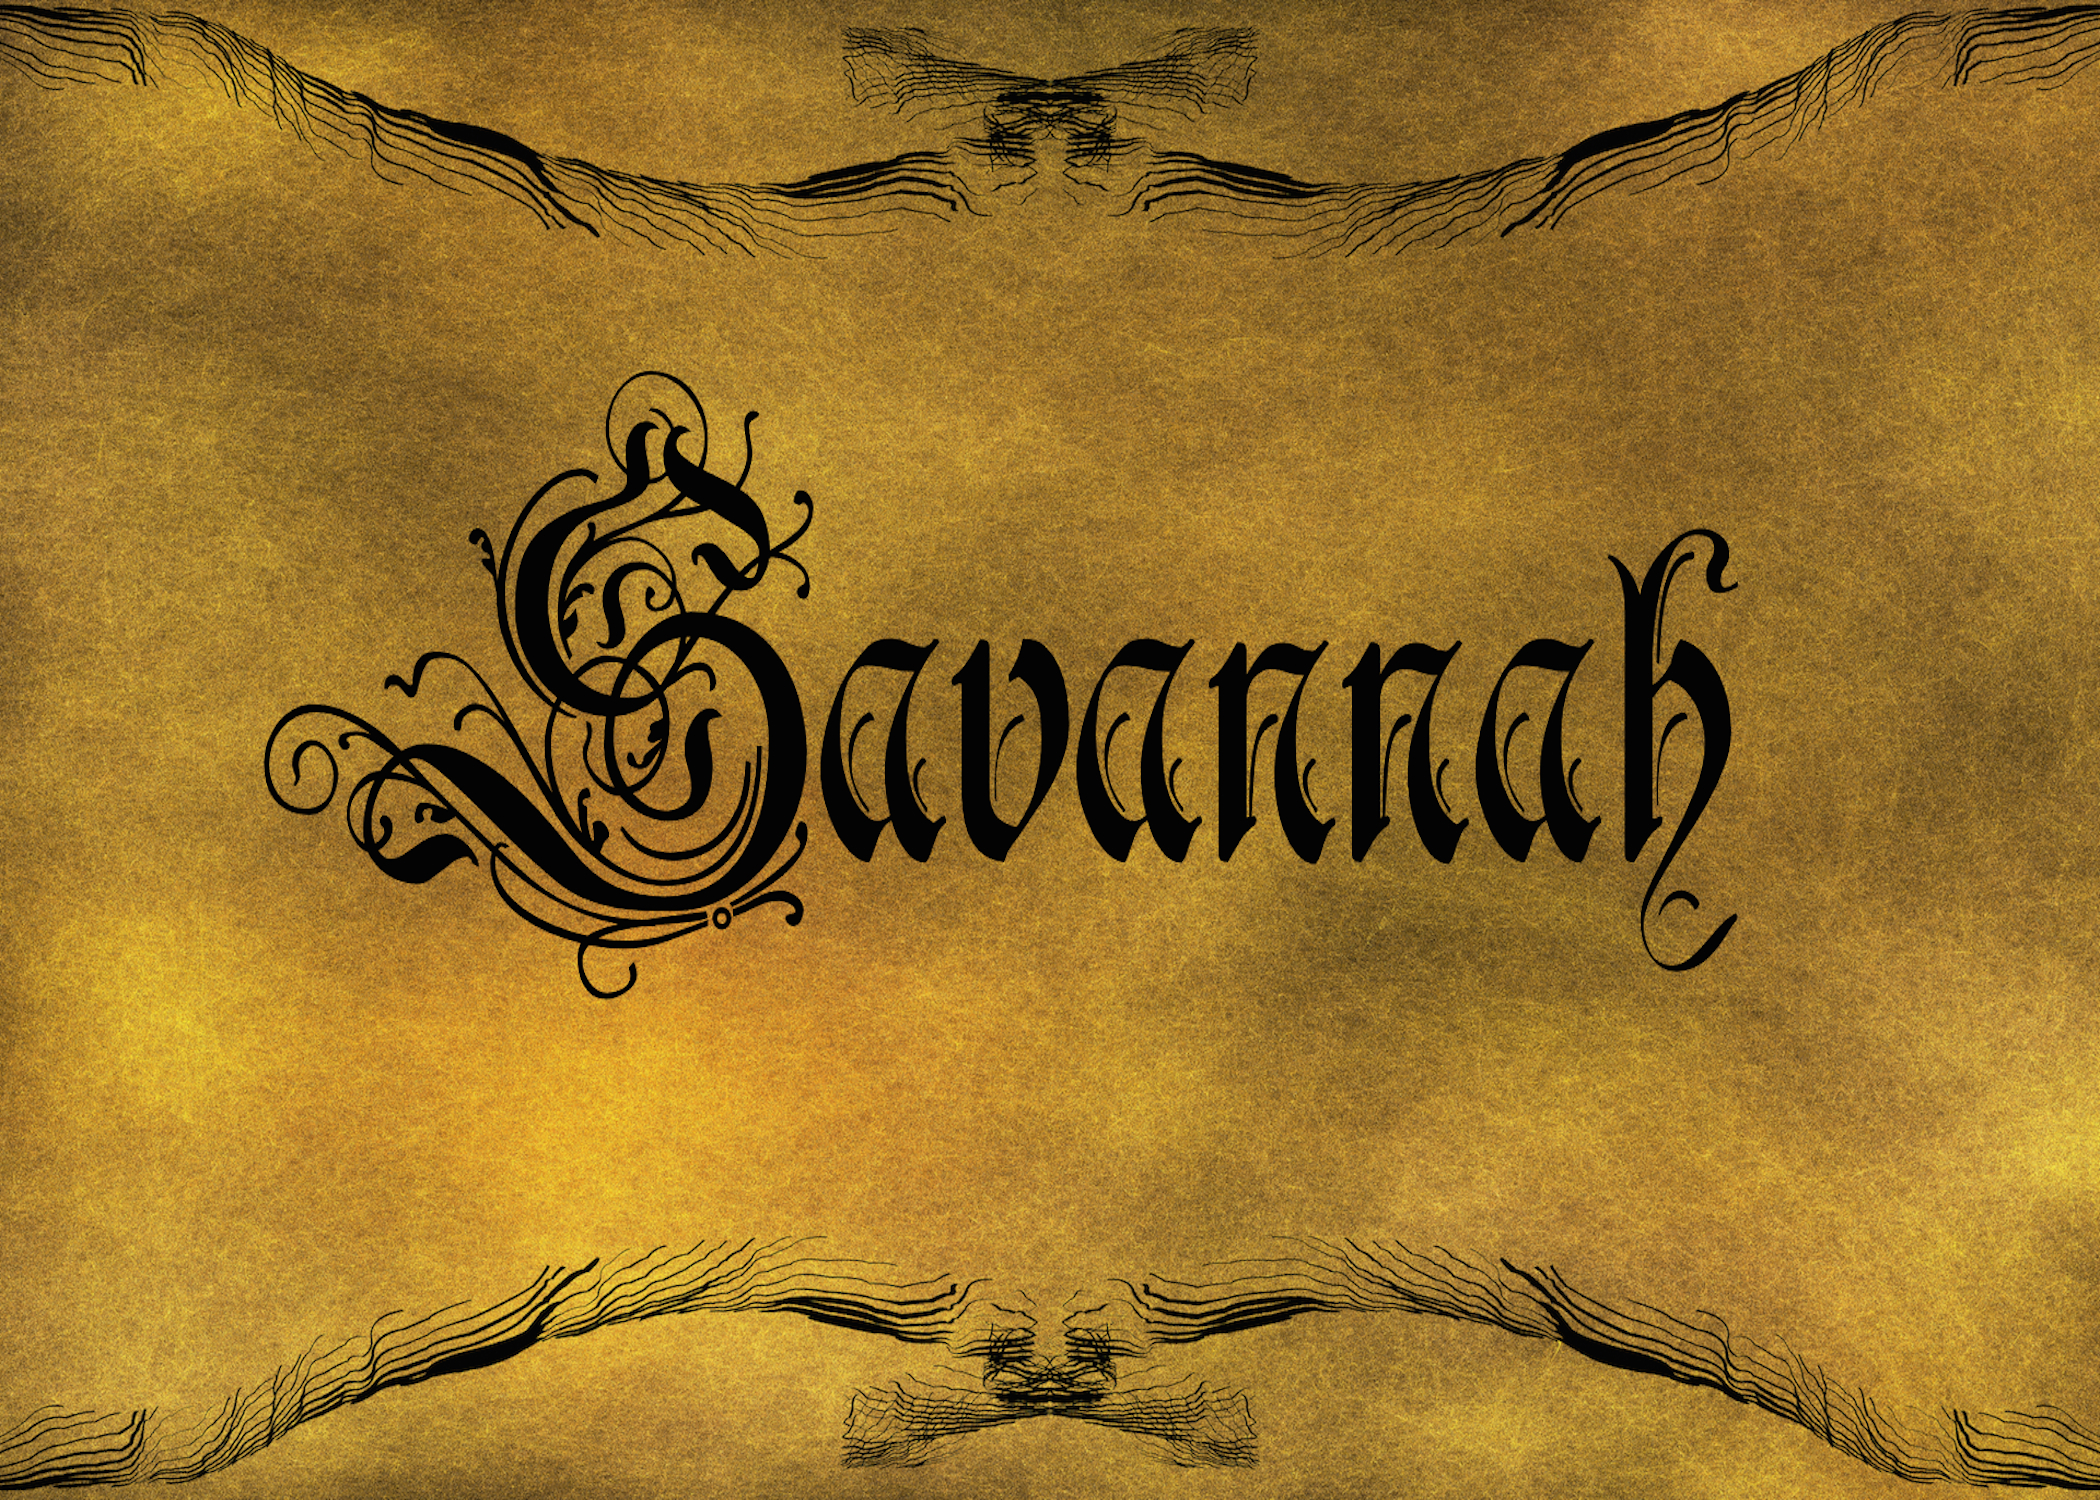 Old World Calligraphy, Scroll, Oldworld, Name, Calligraphy, HQ Photo